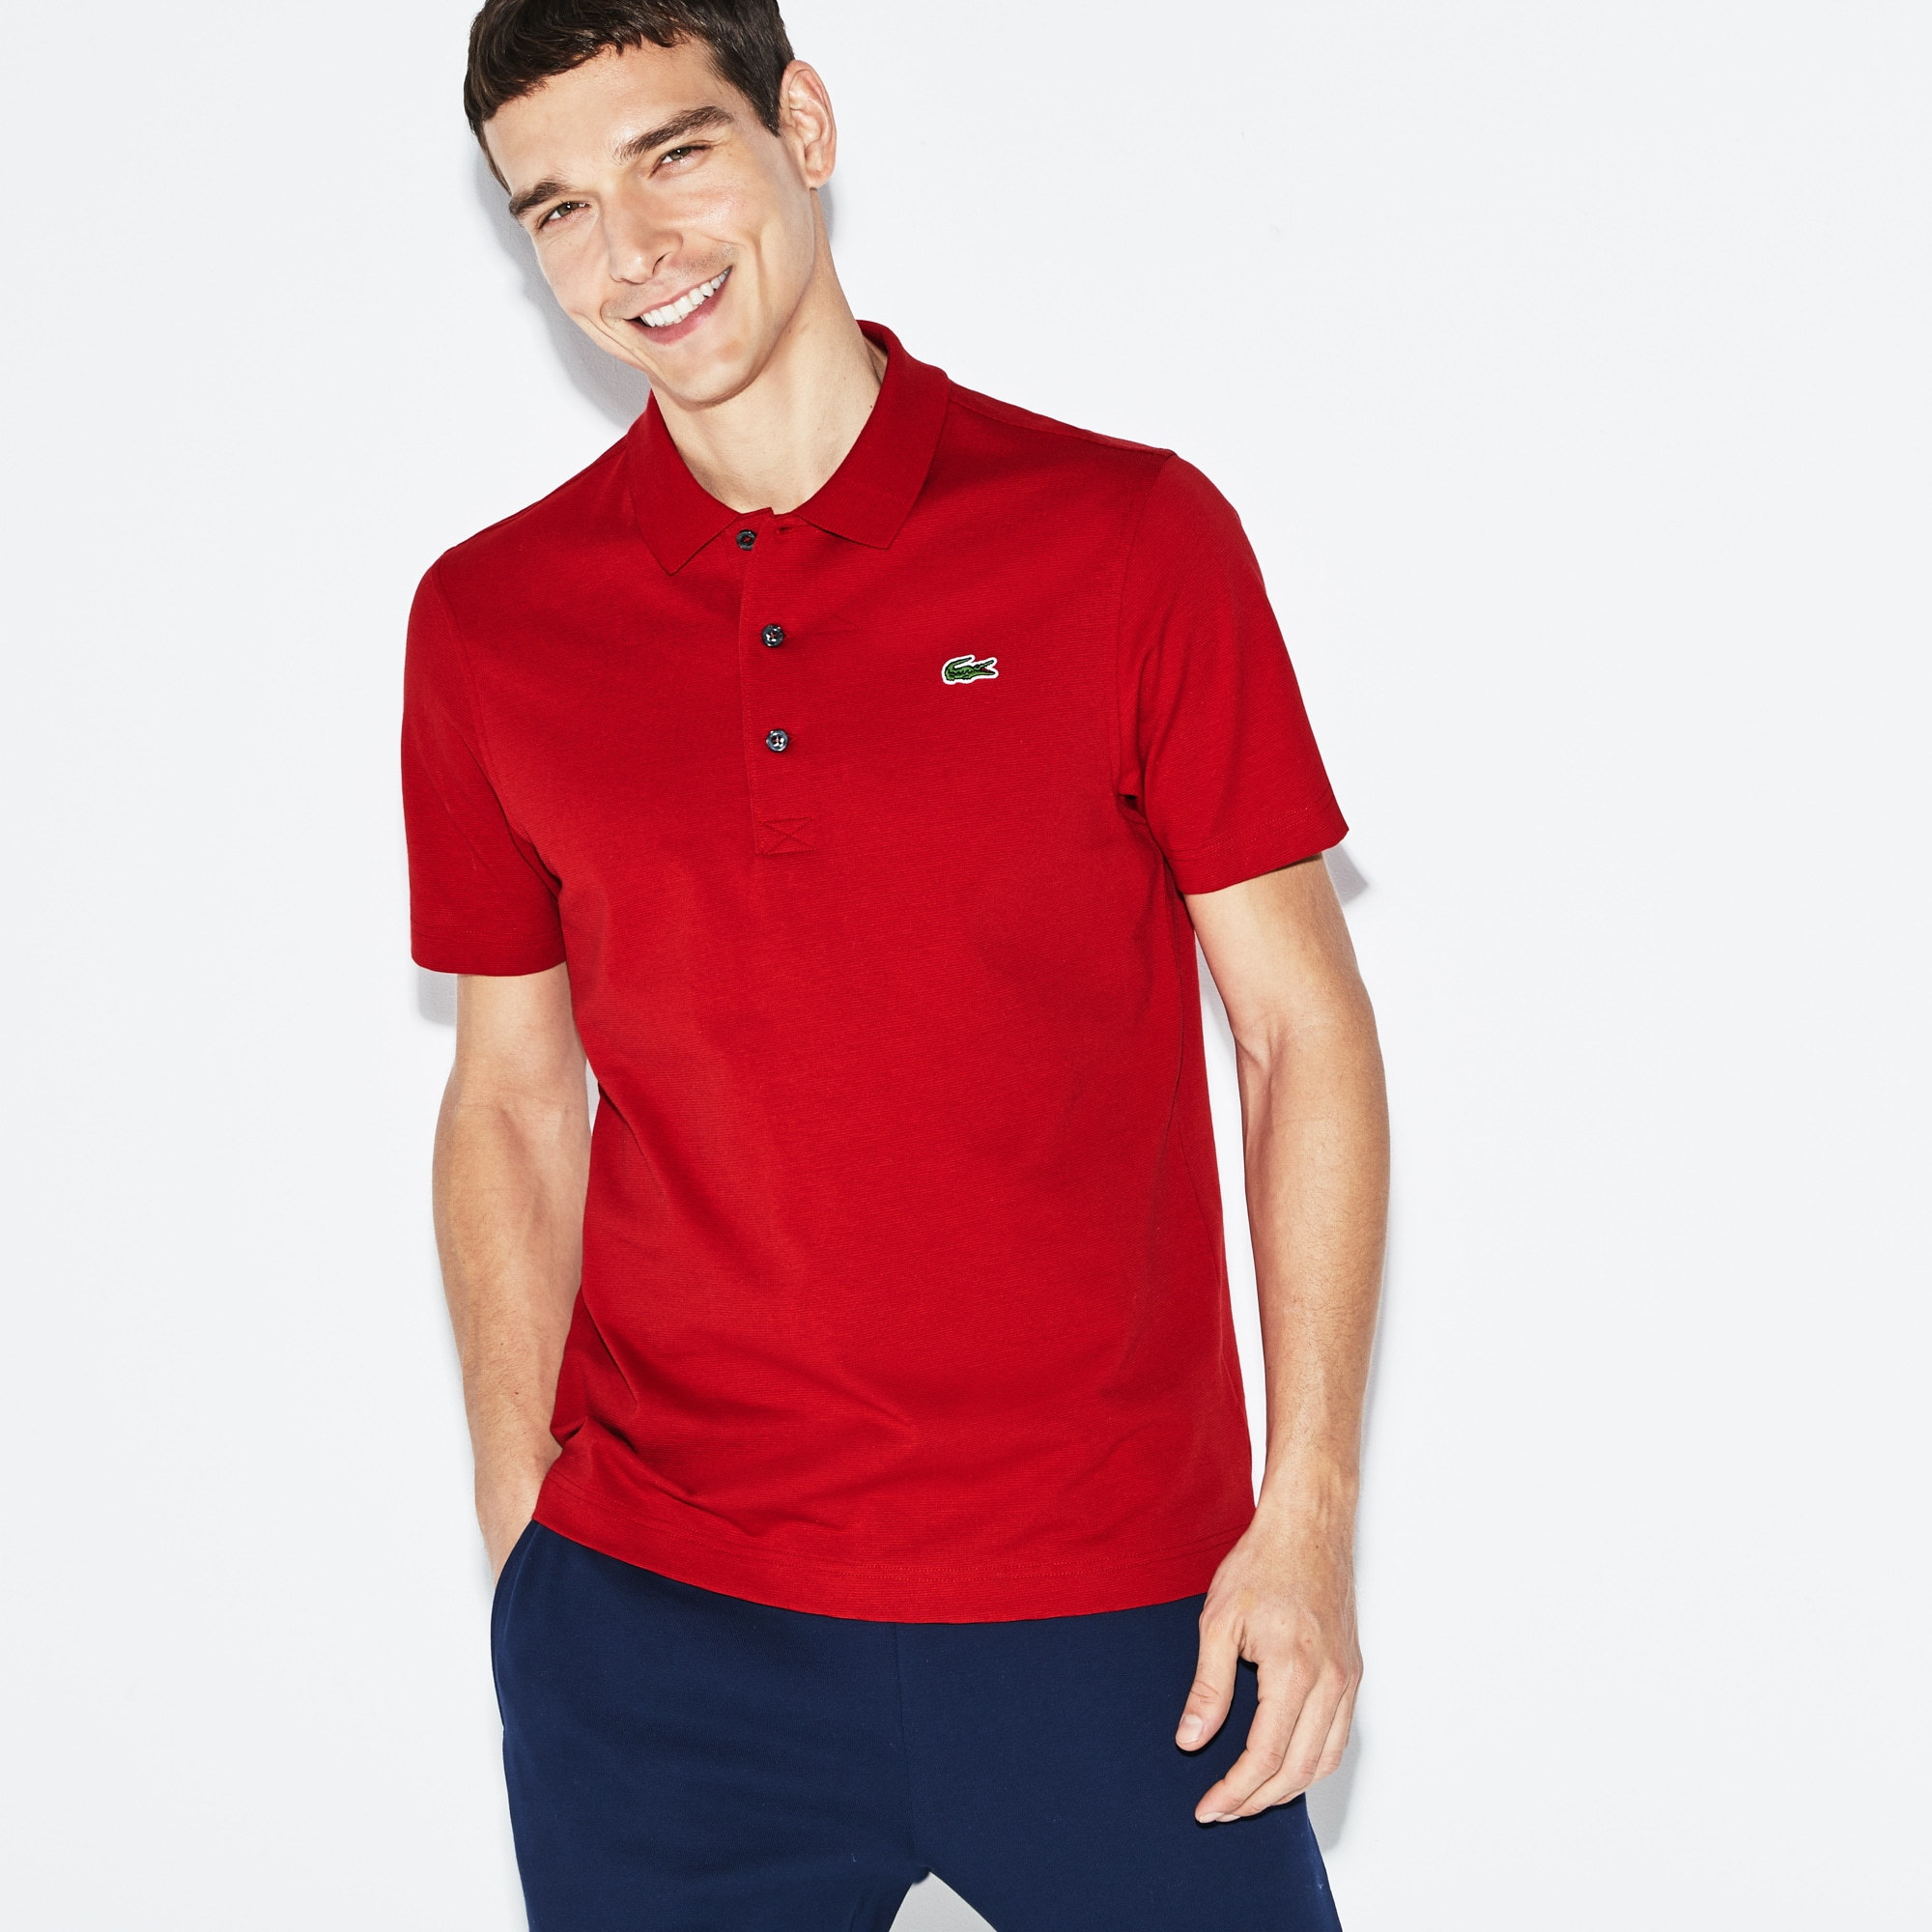 Men's Lacoste SPORT Tennis regular fit Polo Shirt in ultra-lightweight knit